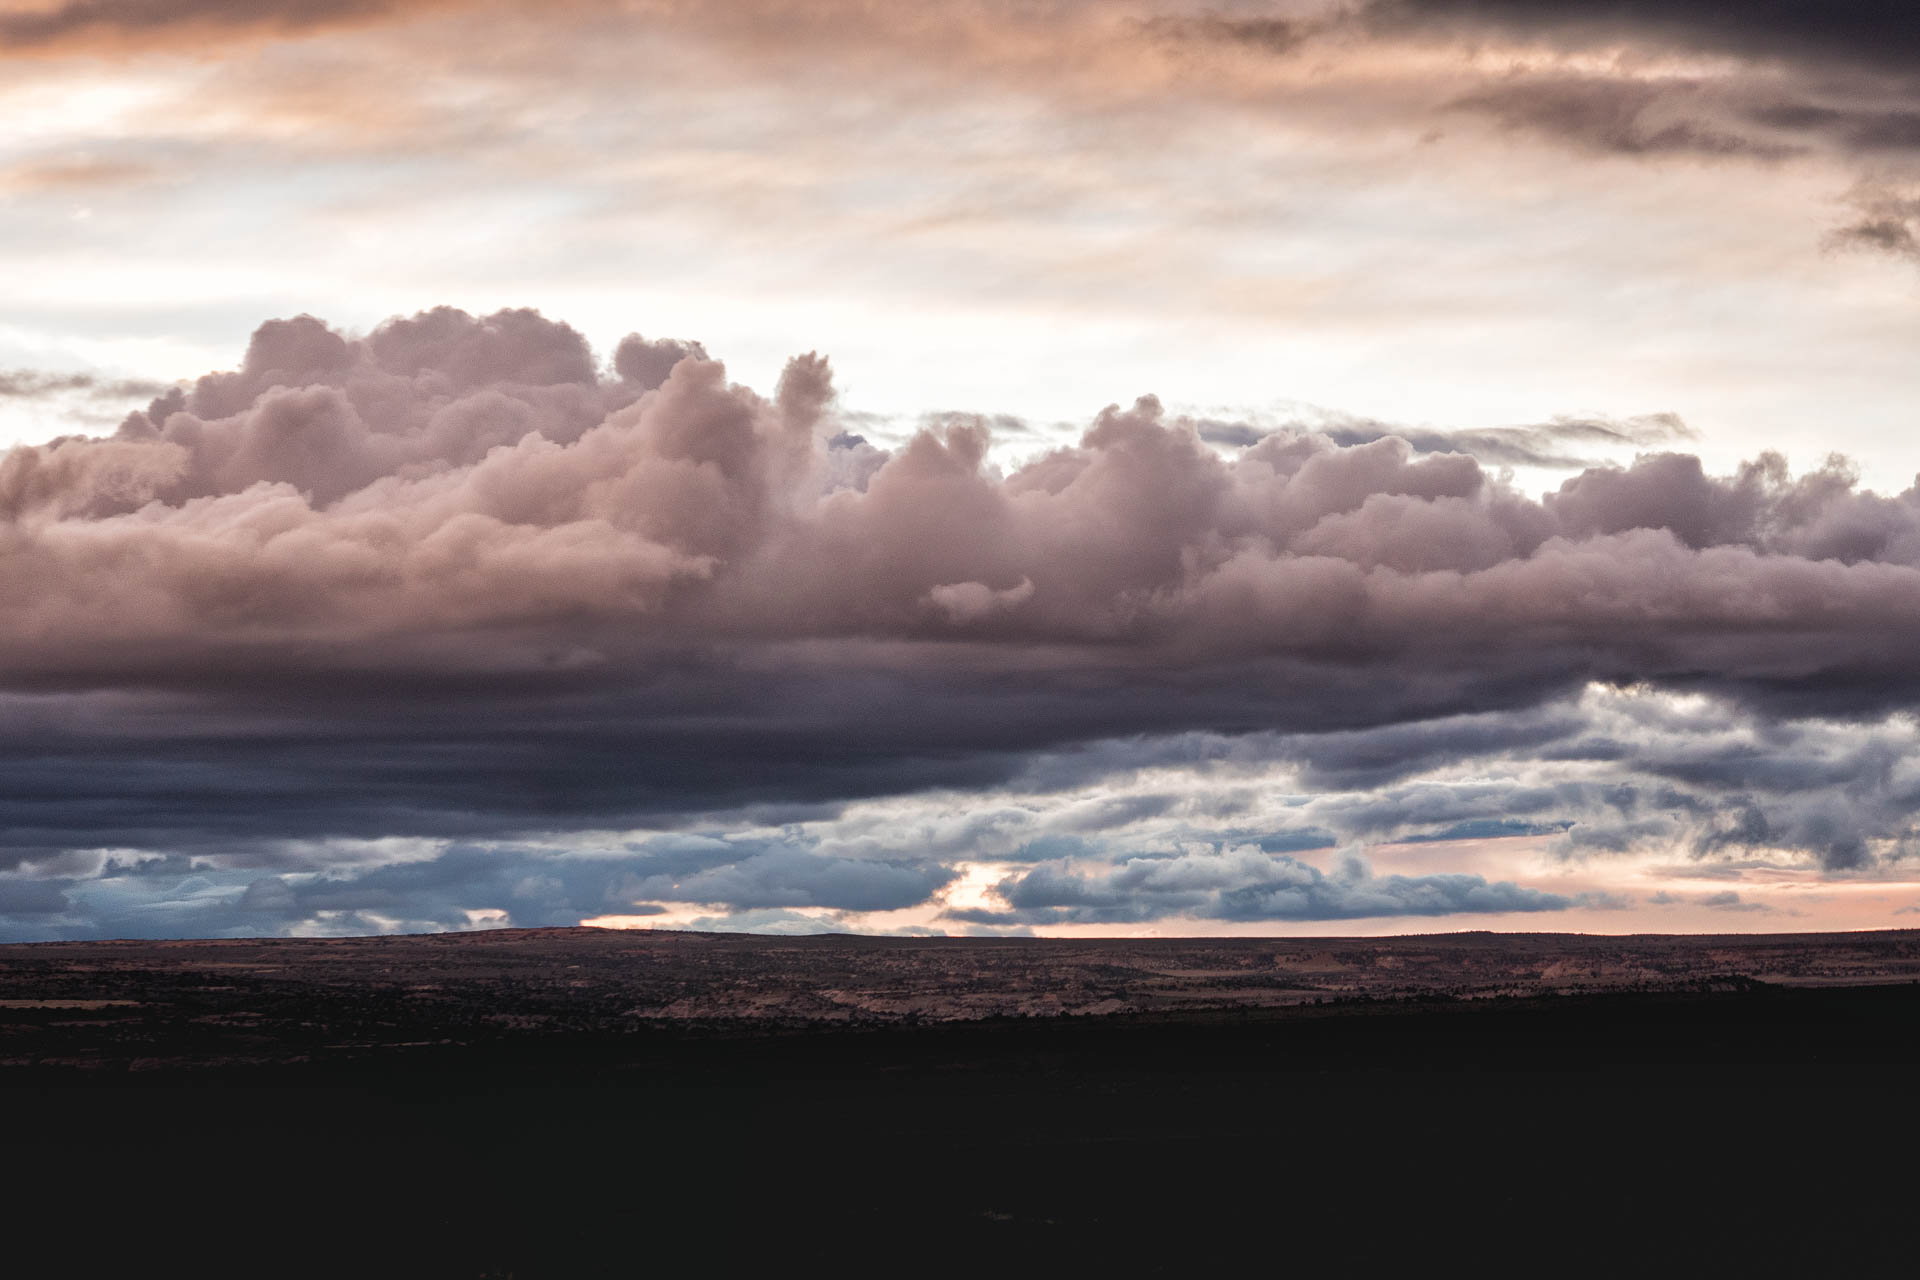 clouds over the desert